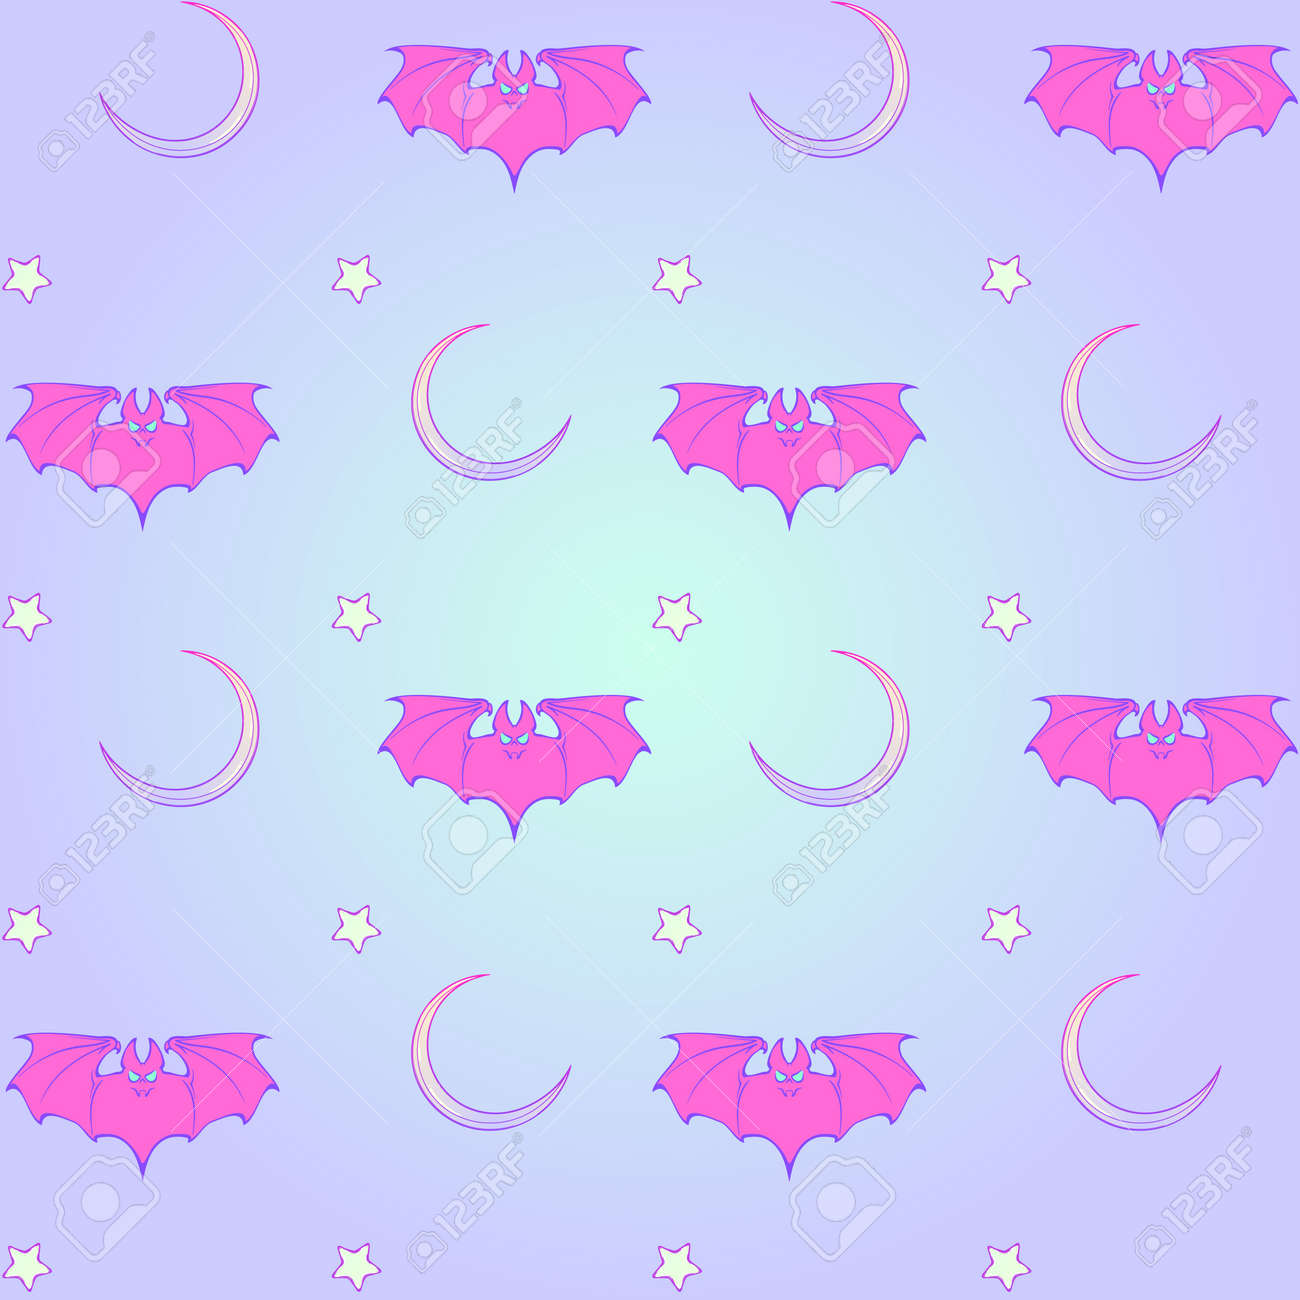 Kawaii Bats Stars And Moon Crescent Festive Seamless Pattern Pastel Goth Palette Cute